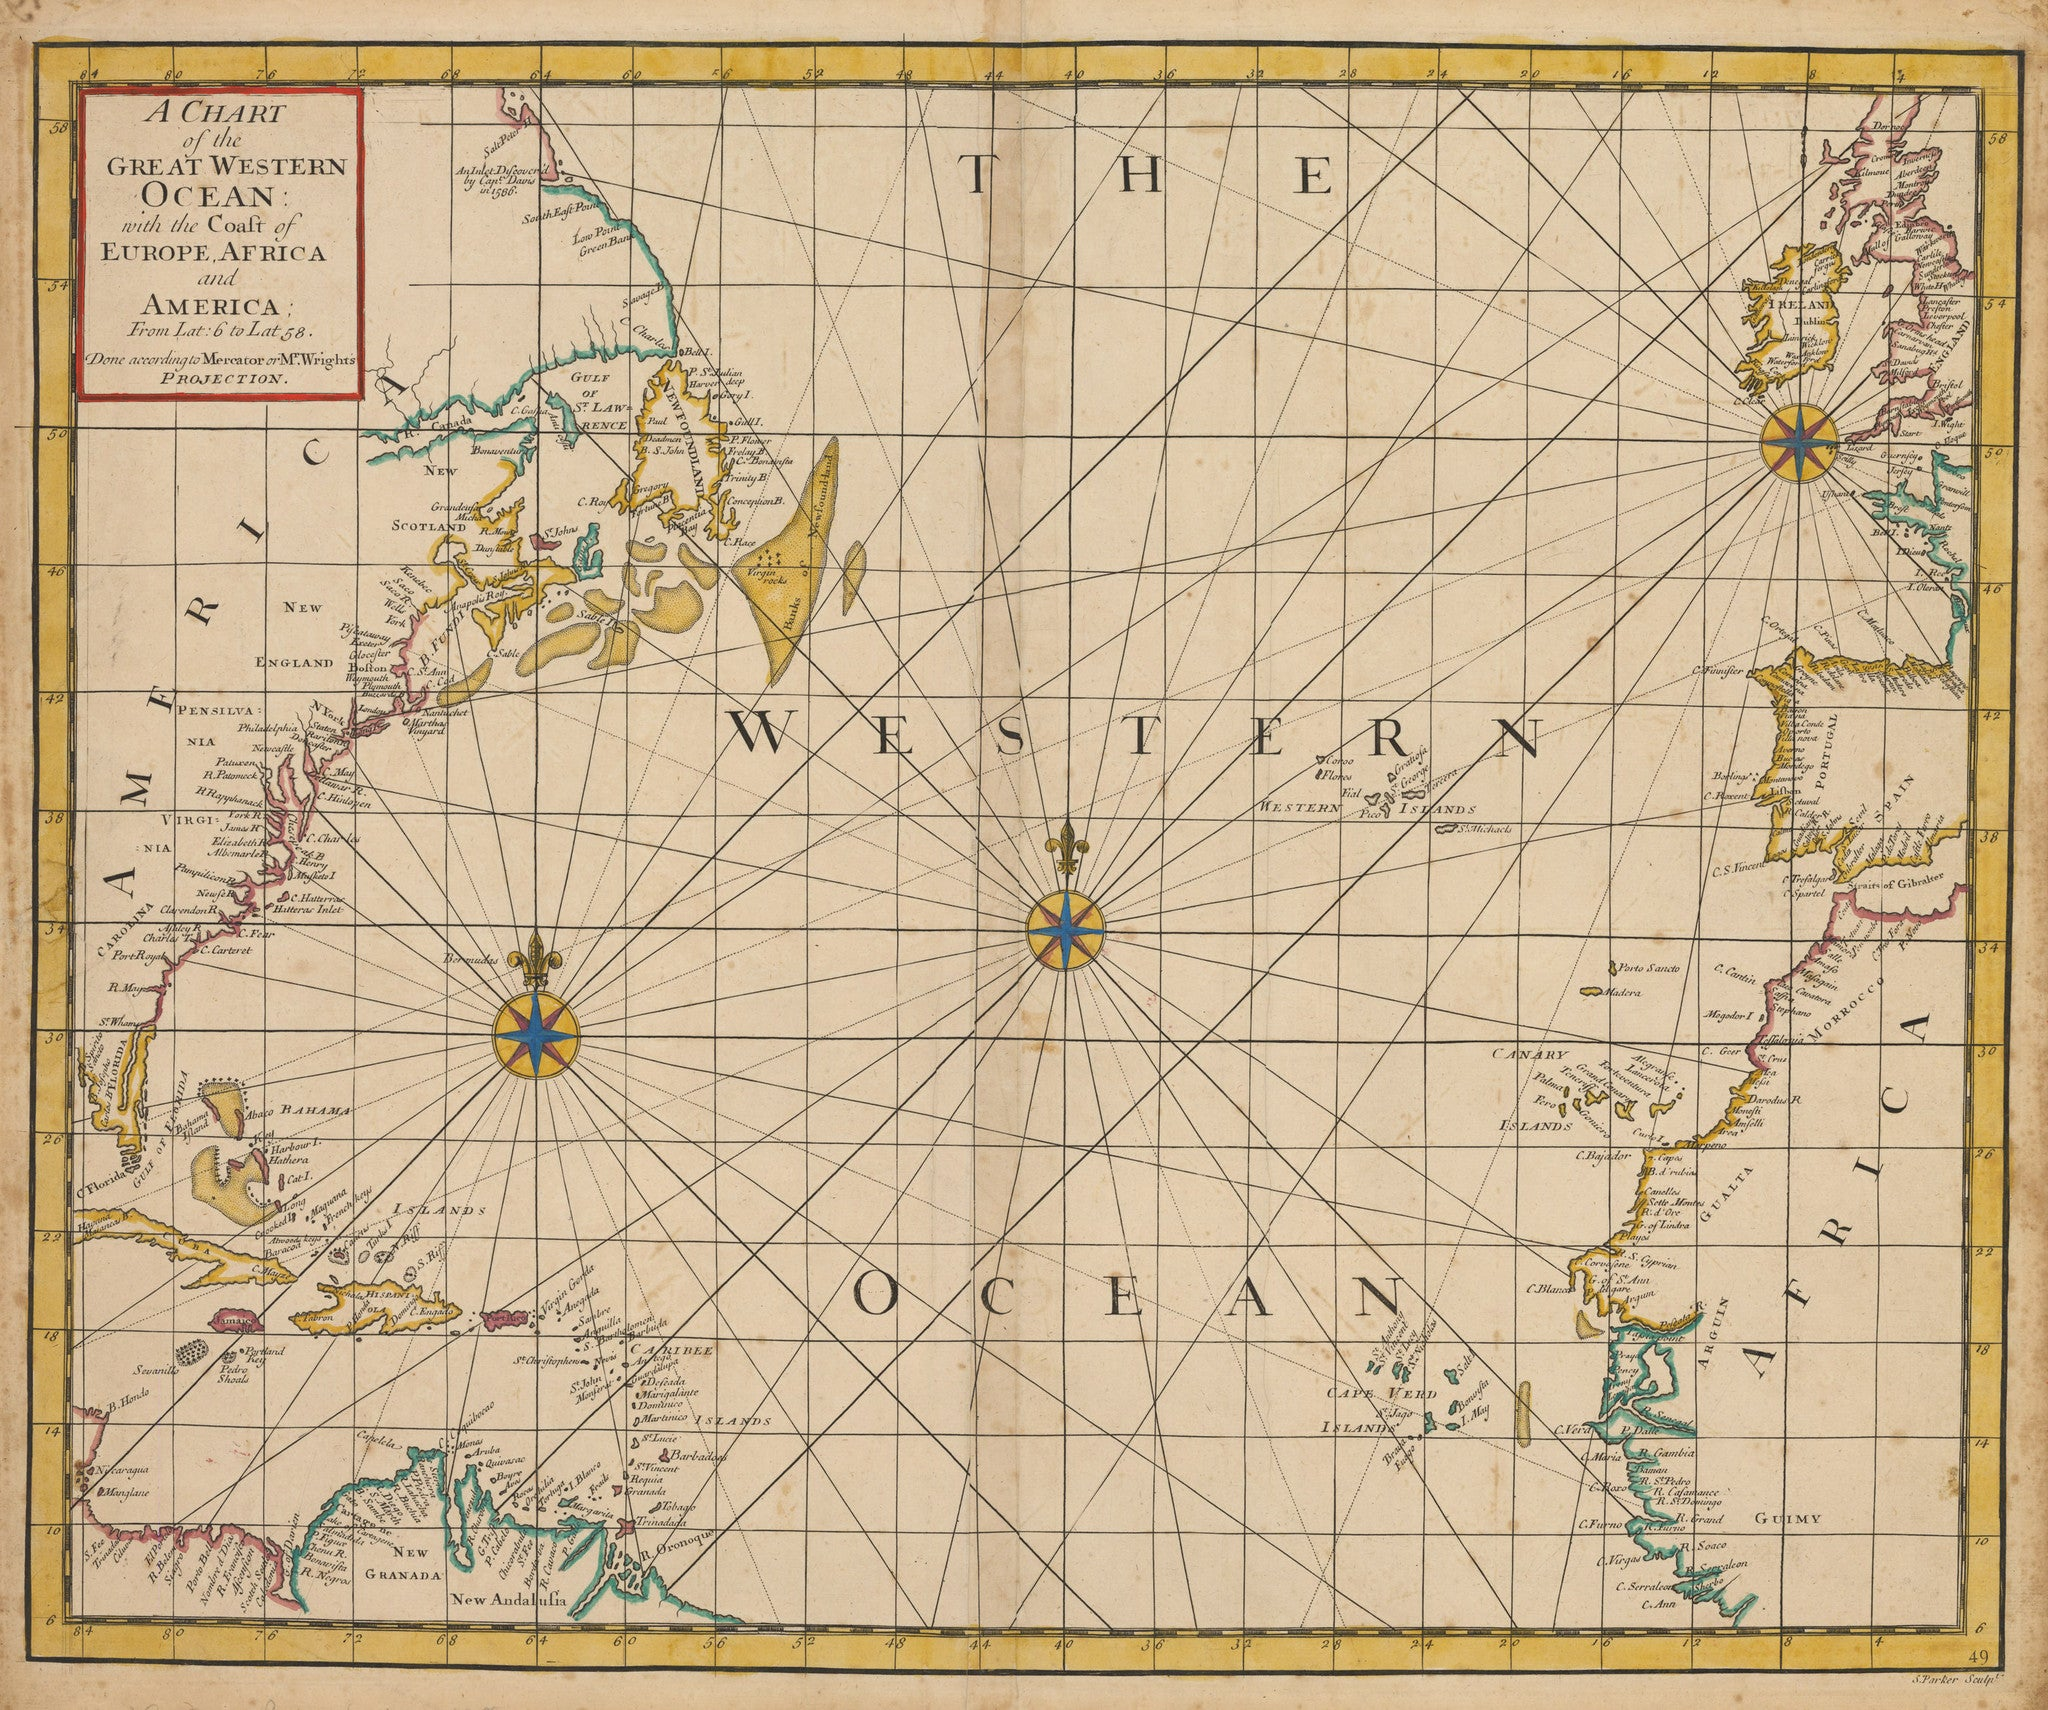 A Chart of the Great Western Ocean with the Coast of Europe, Africa and America From Lat:6 to Lat 58